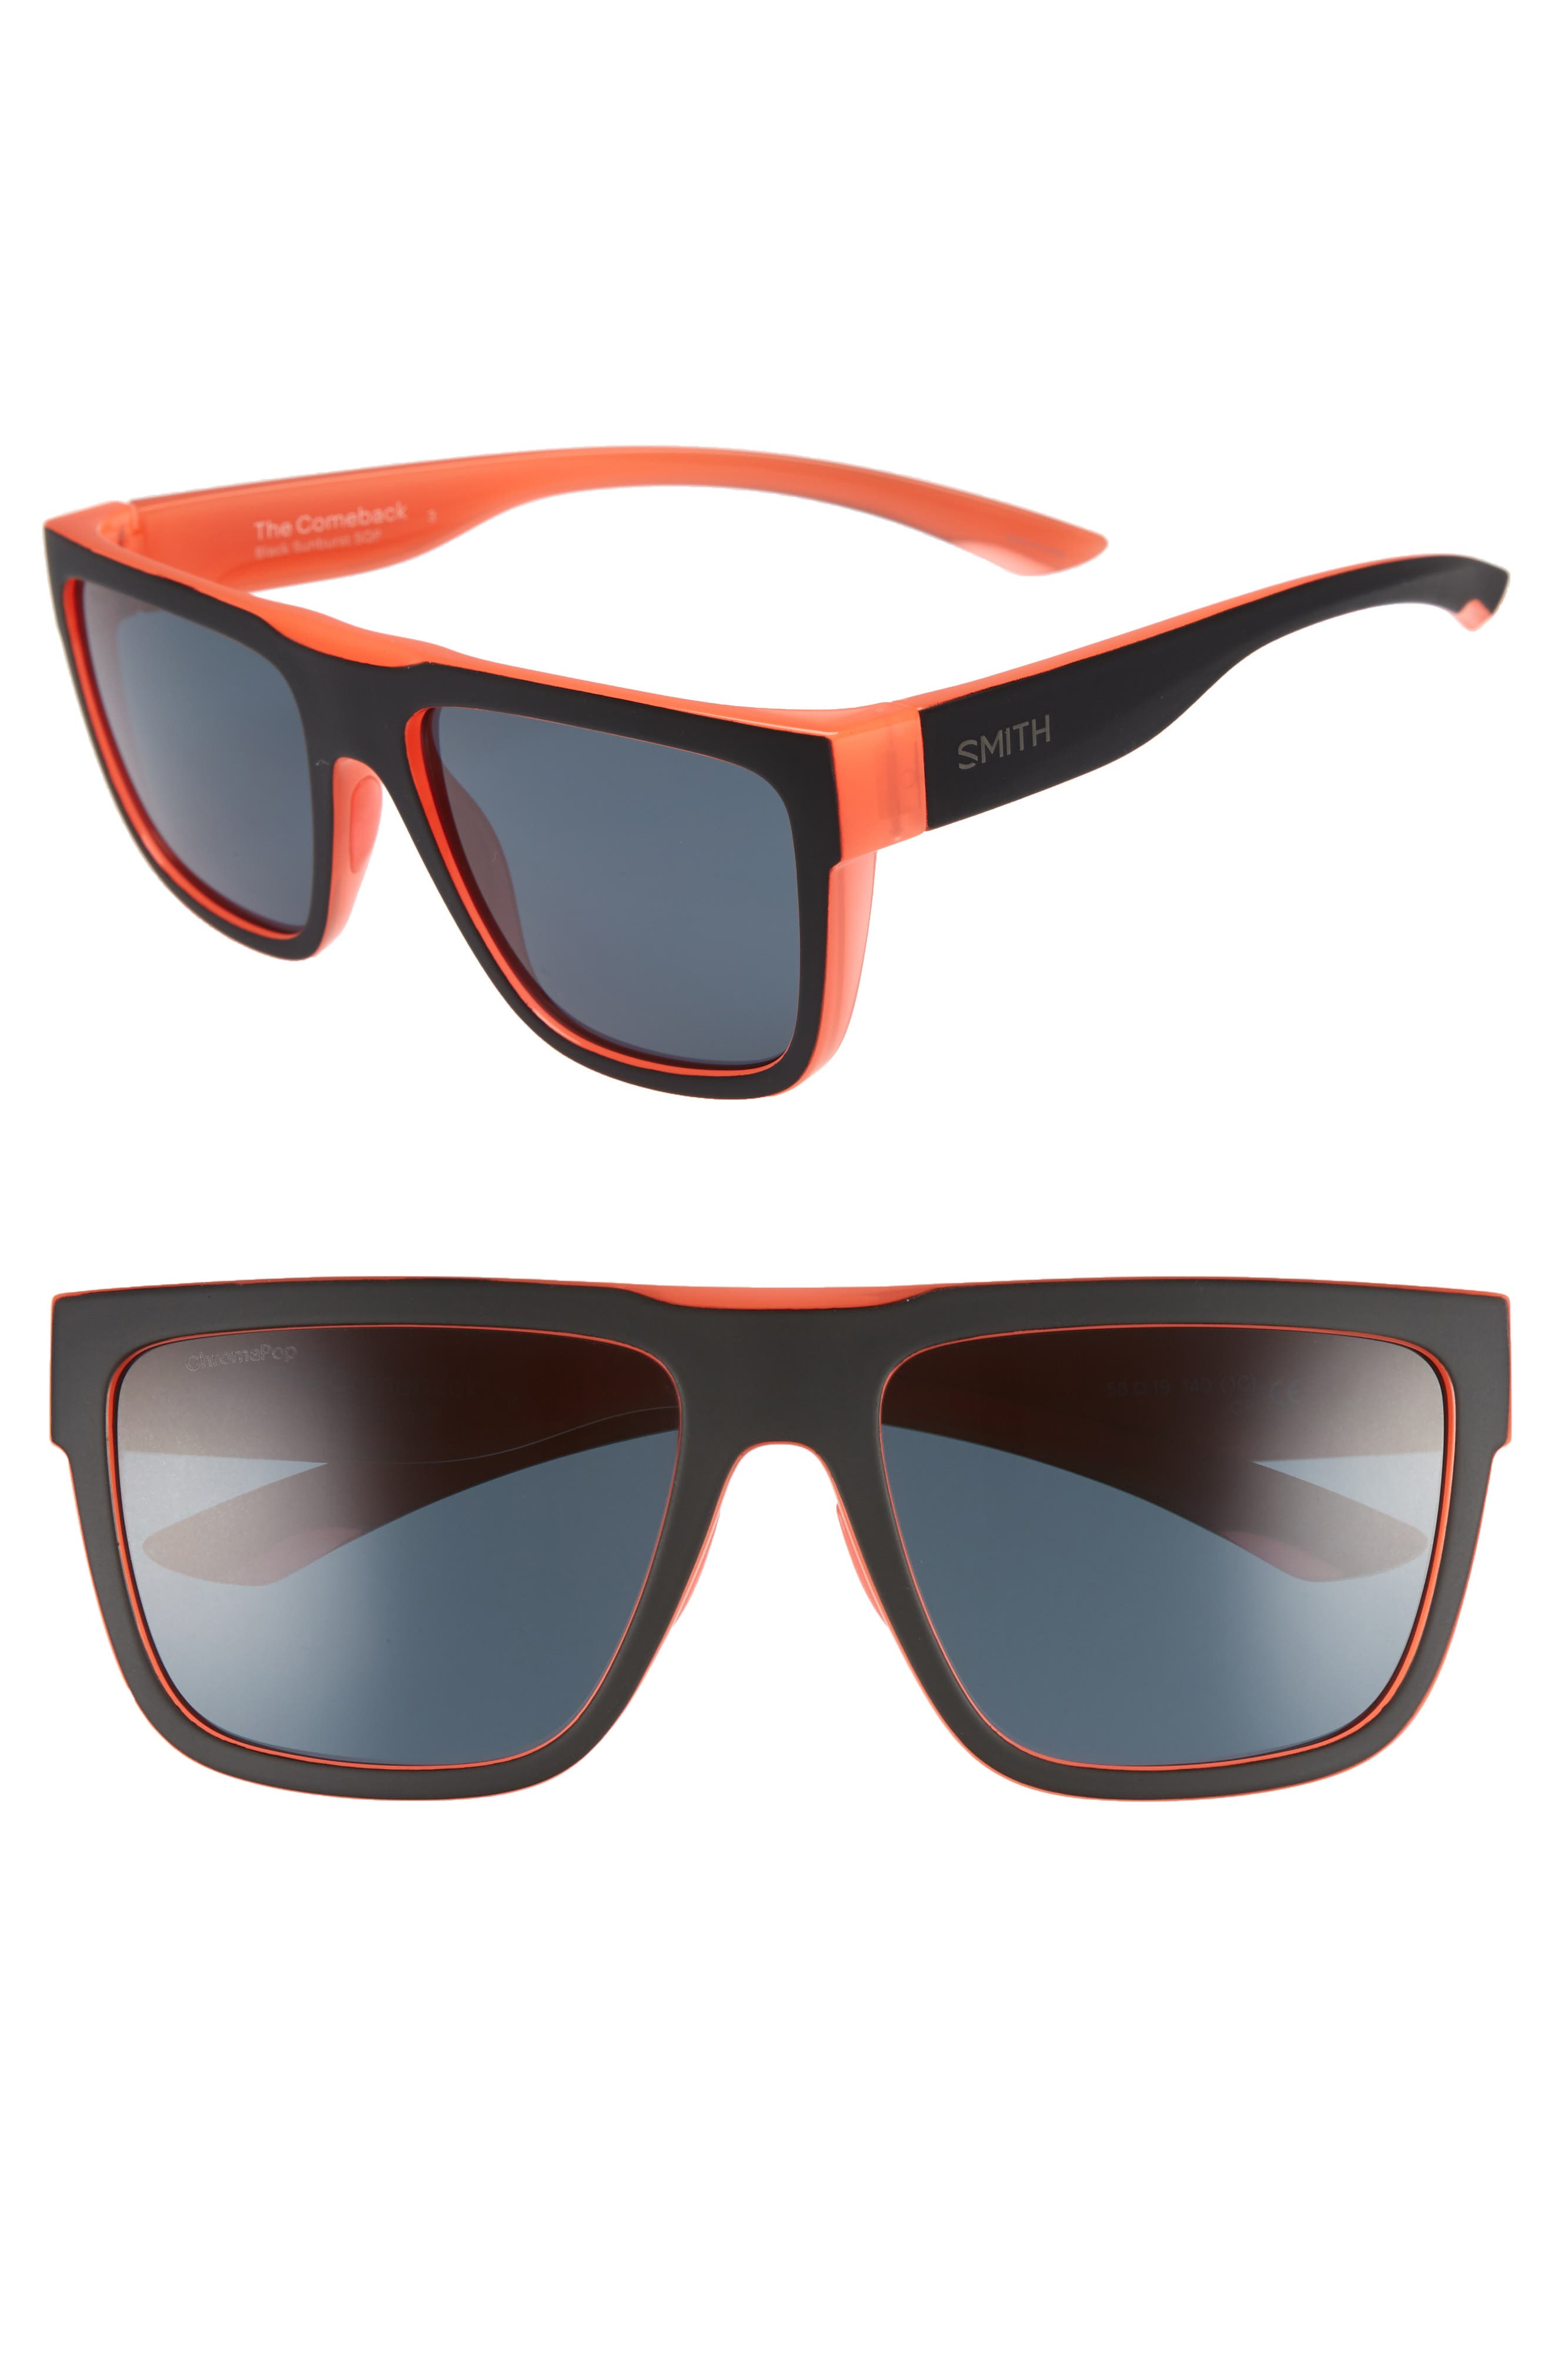 SMITH THE COMEBACK 58MM CHROMAPOP(TM) SQUARE SUNGLASSES - BLACK/ SUNBURST